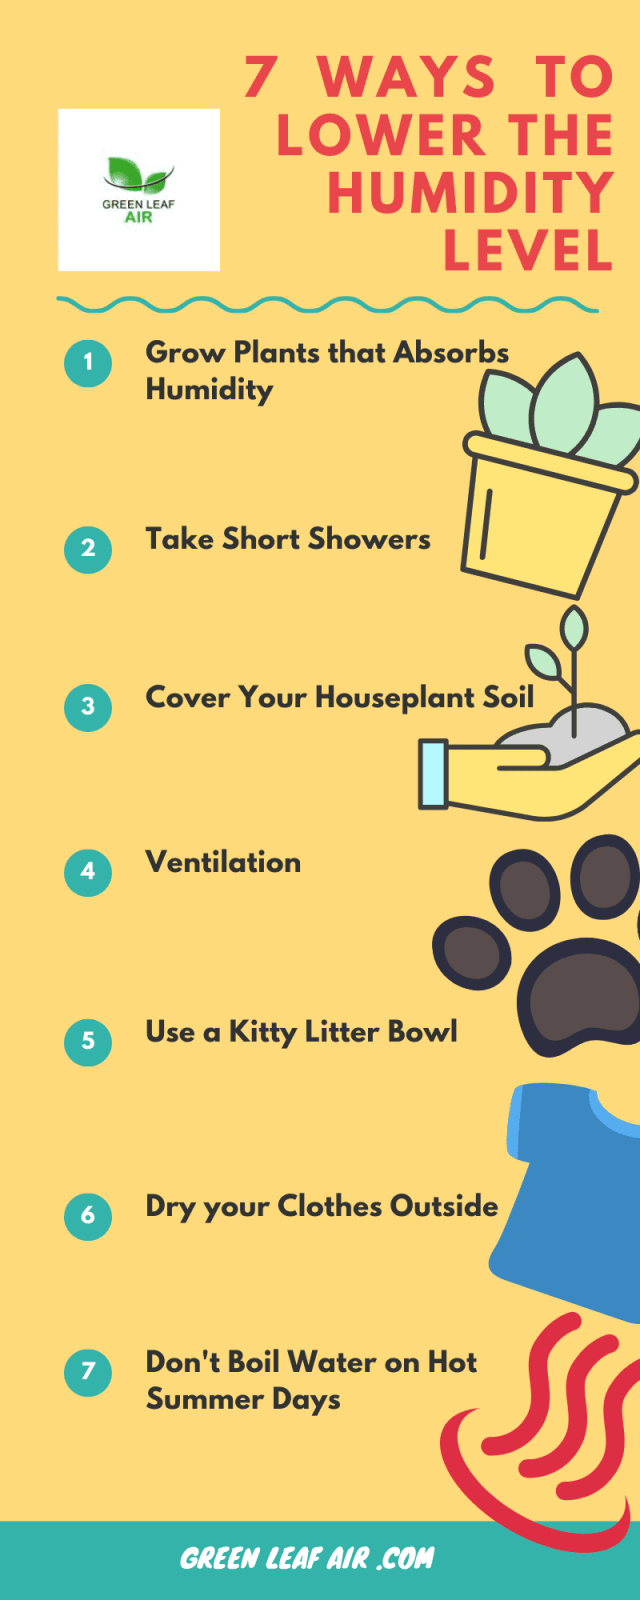 7 Ways To Lower The Humidity Level